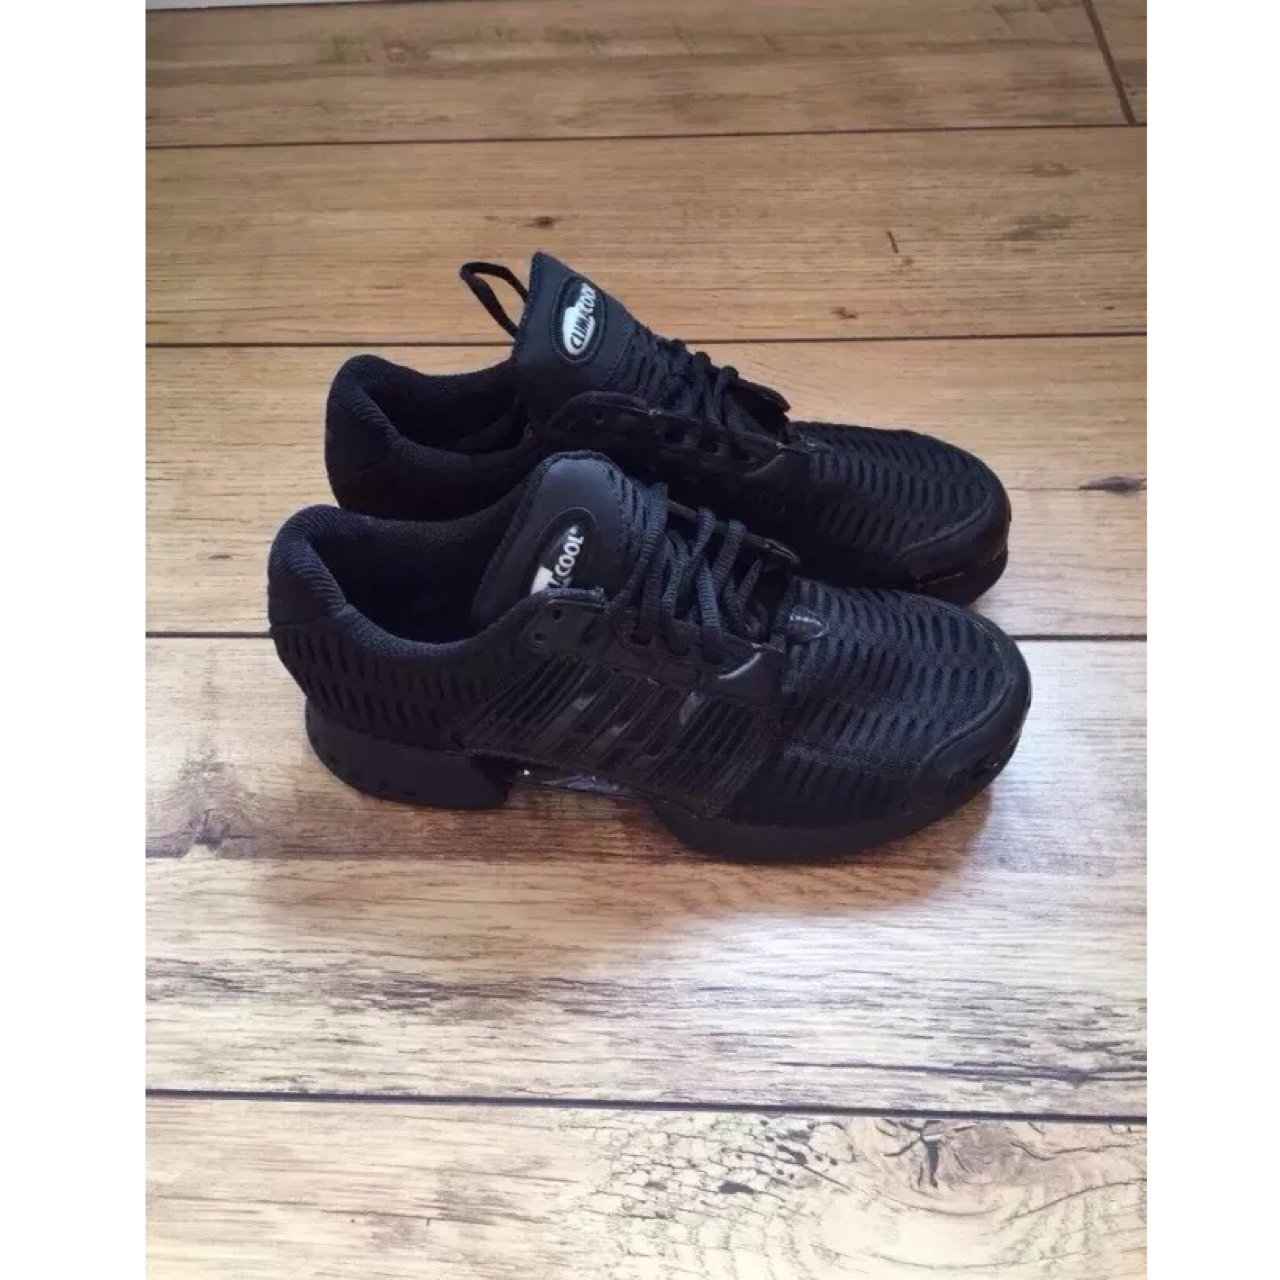 Brand new men's all black Adidas Climacool trainers. Depop